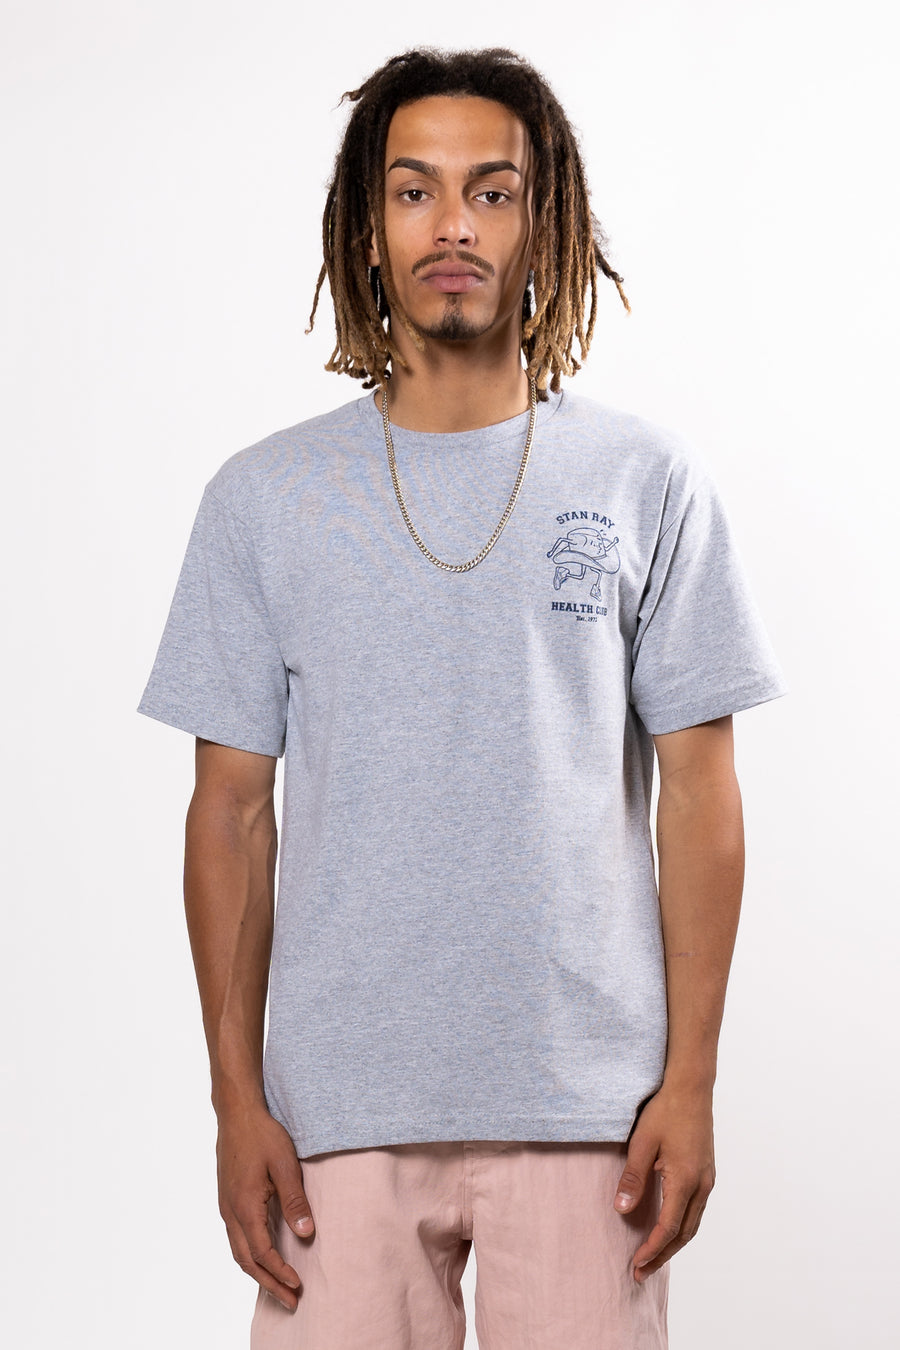 STAN RAY Health Club Tee Grey Marle | HAVN